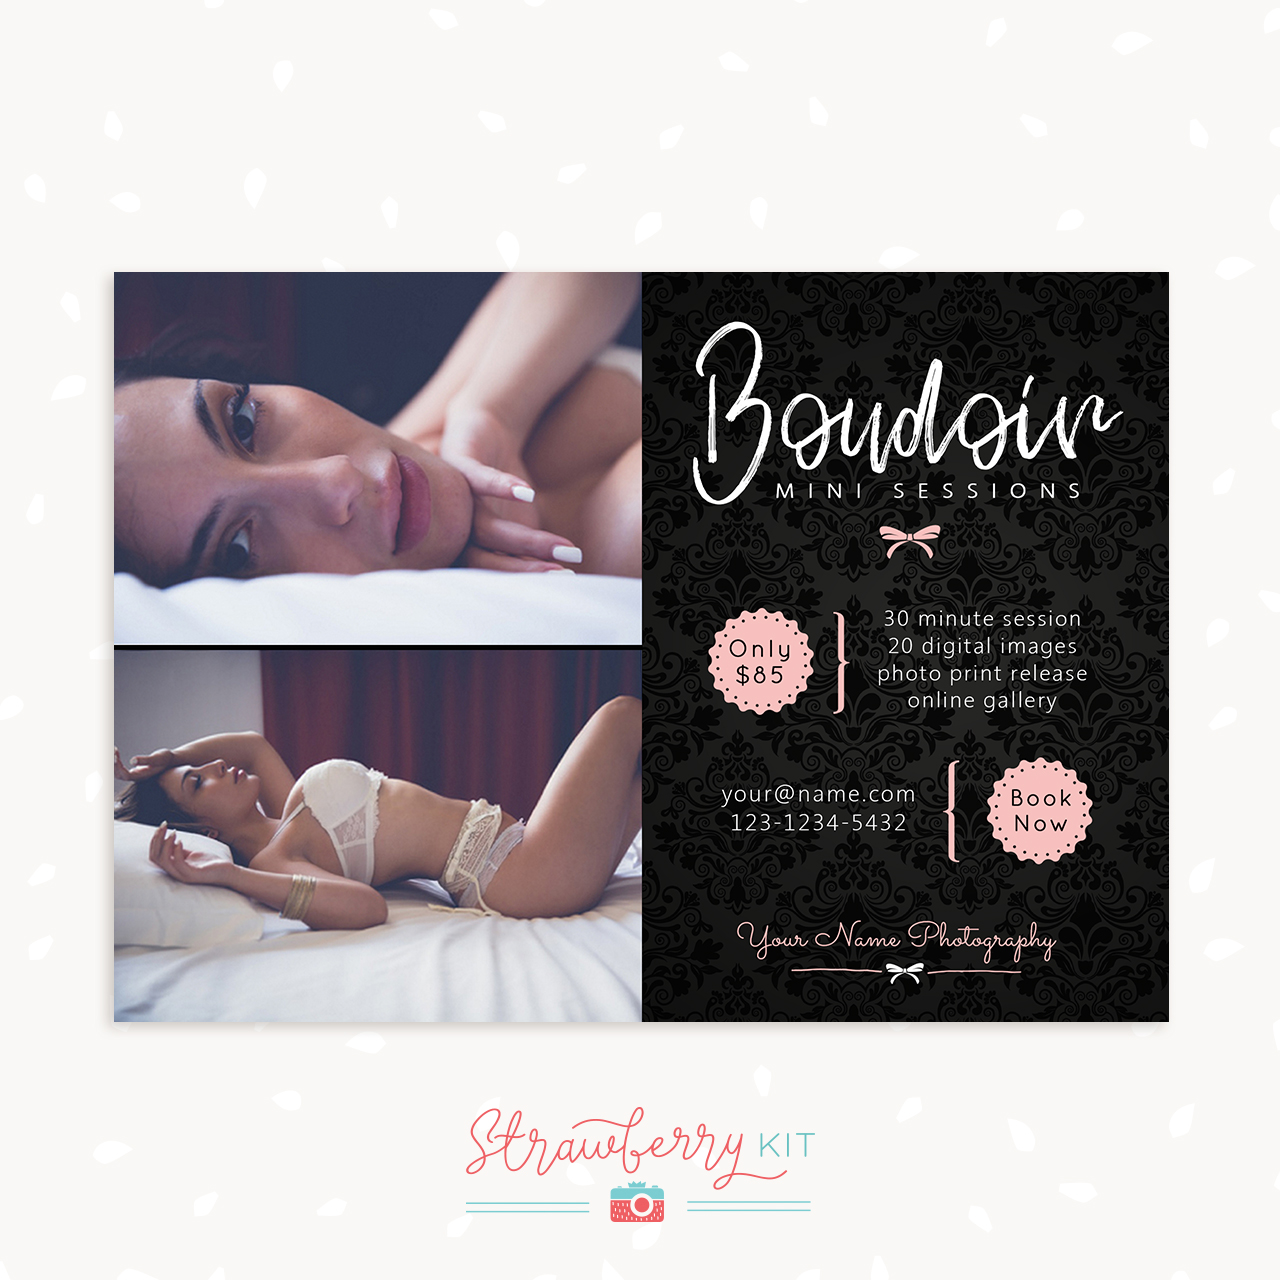 Boudoir mini sessions marketing board photographers